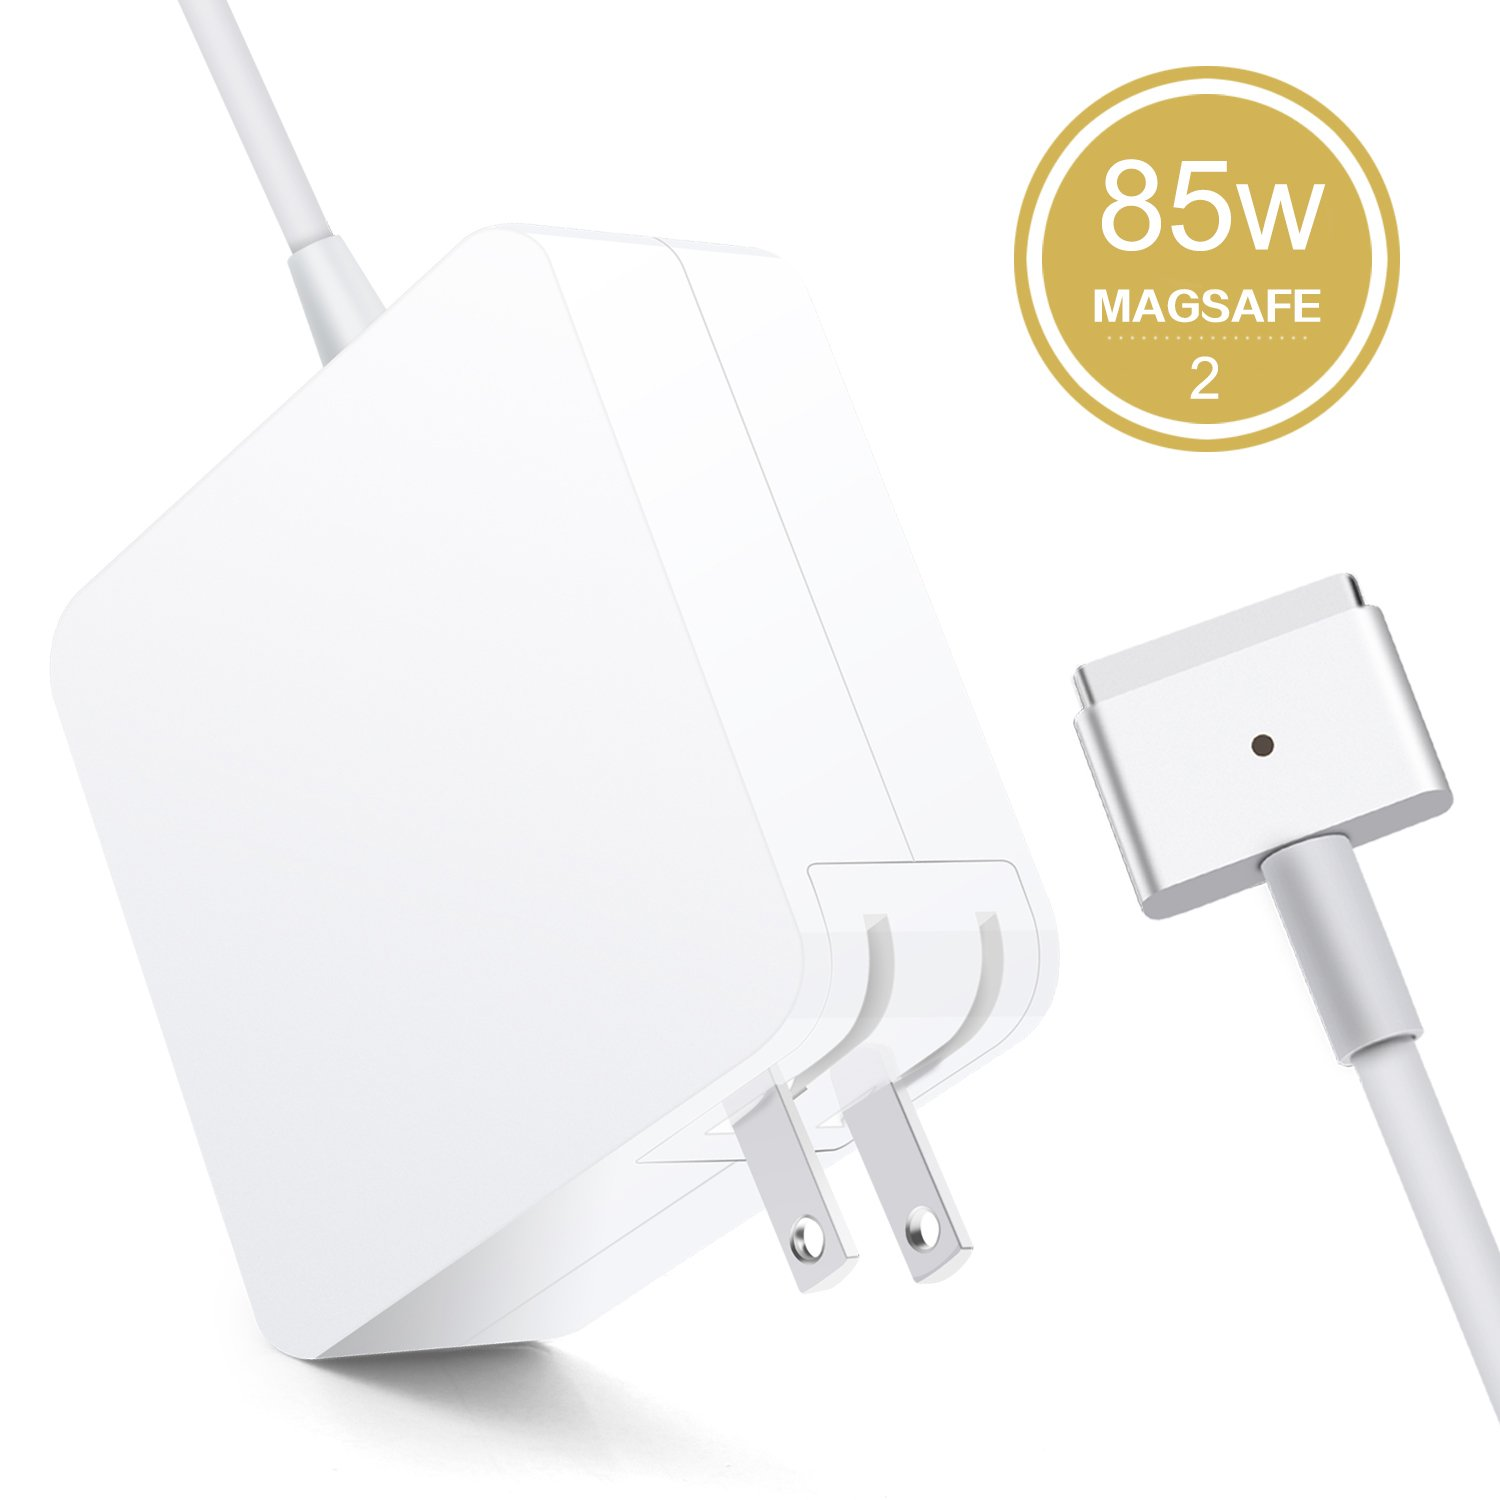 Halcent Macbook Pro Charger,85W Magsafe 2 Charger with T-Tip,85W Magsafe Adapter for Macbook Pro 15 Inch (Mid 2012 Later Model)